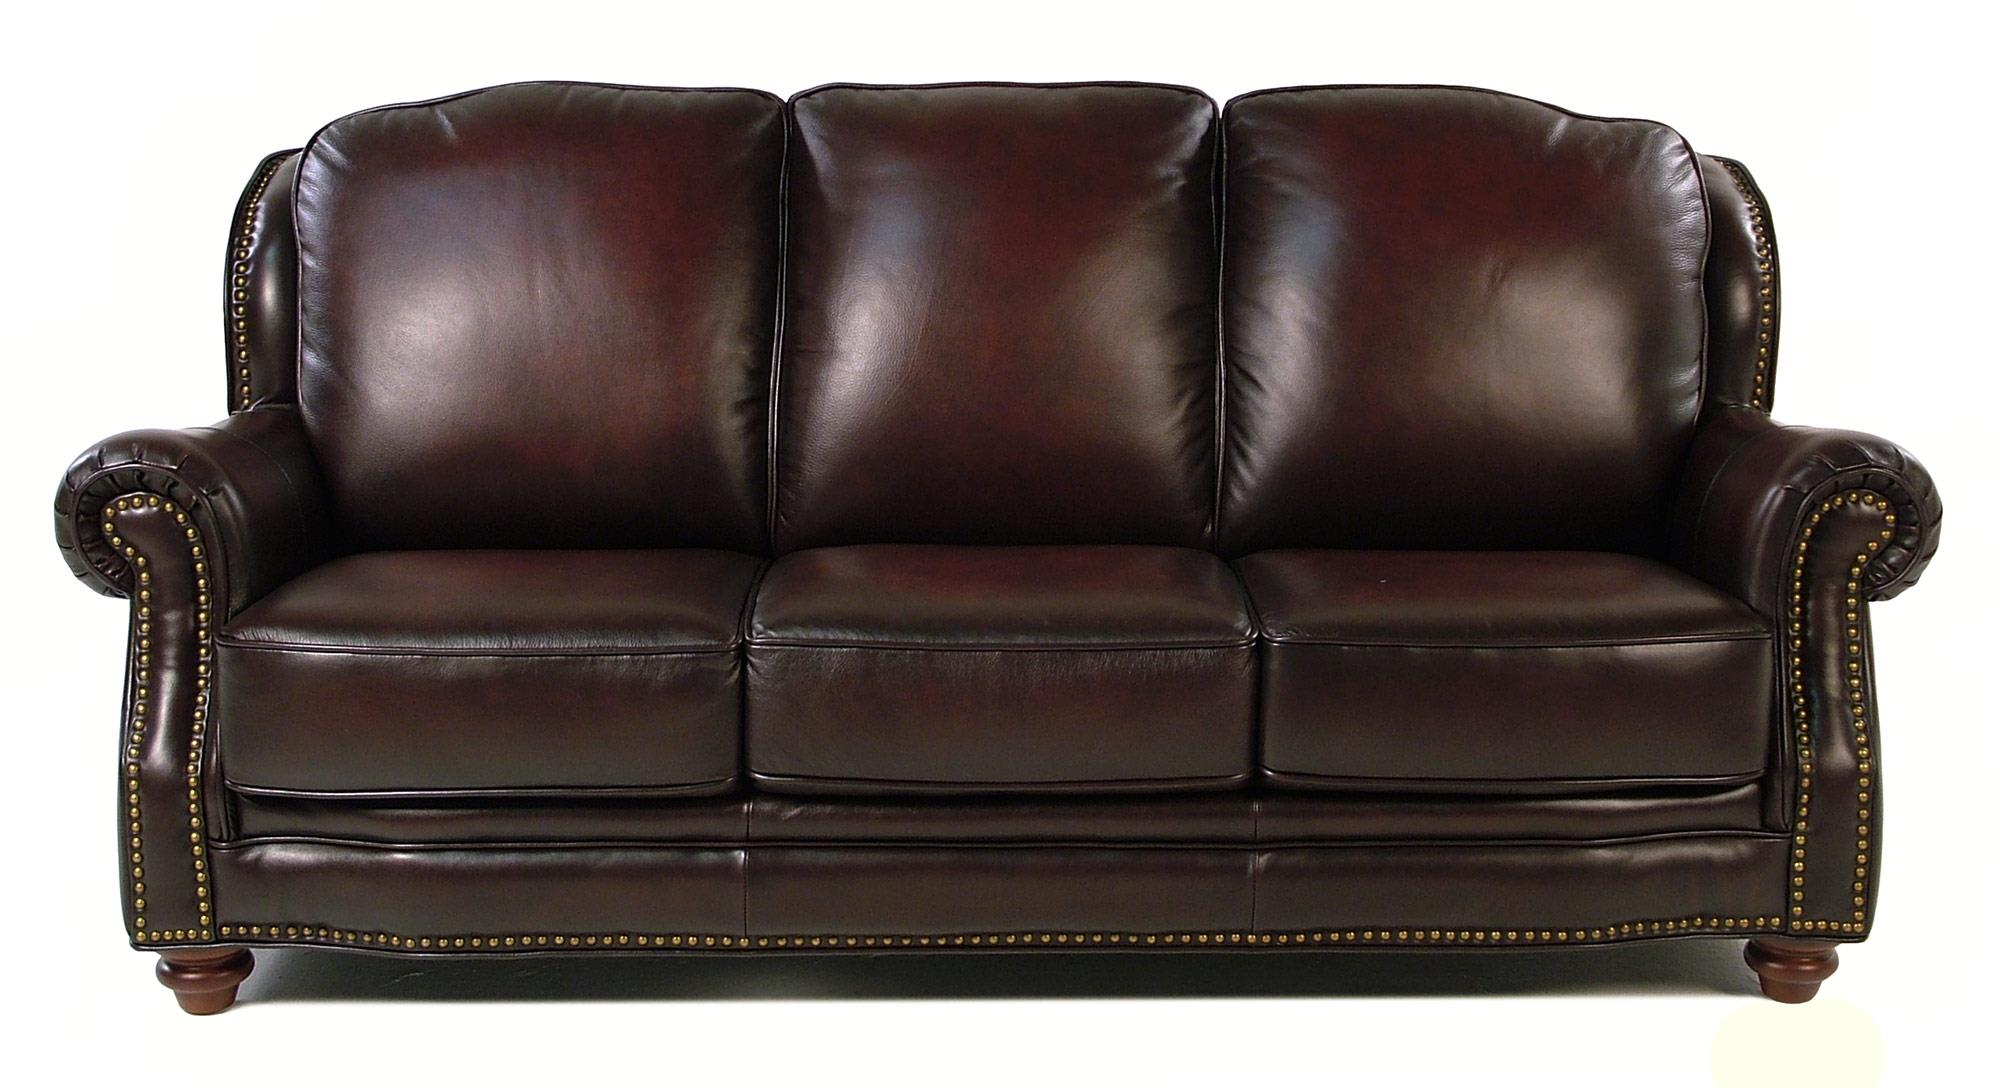 Loft Leather Wallingford Traditional Leather Sofa w/ Nailhead Trim ...